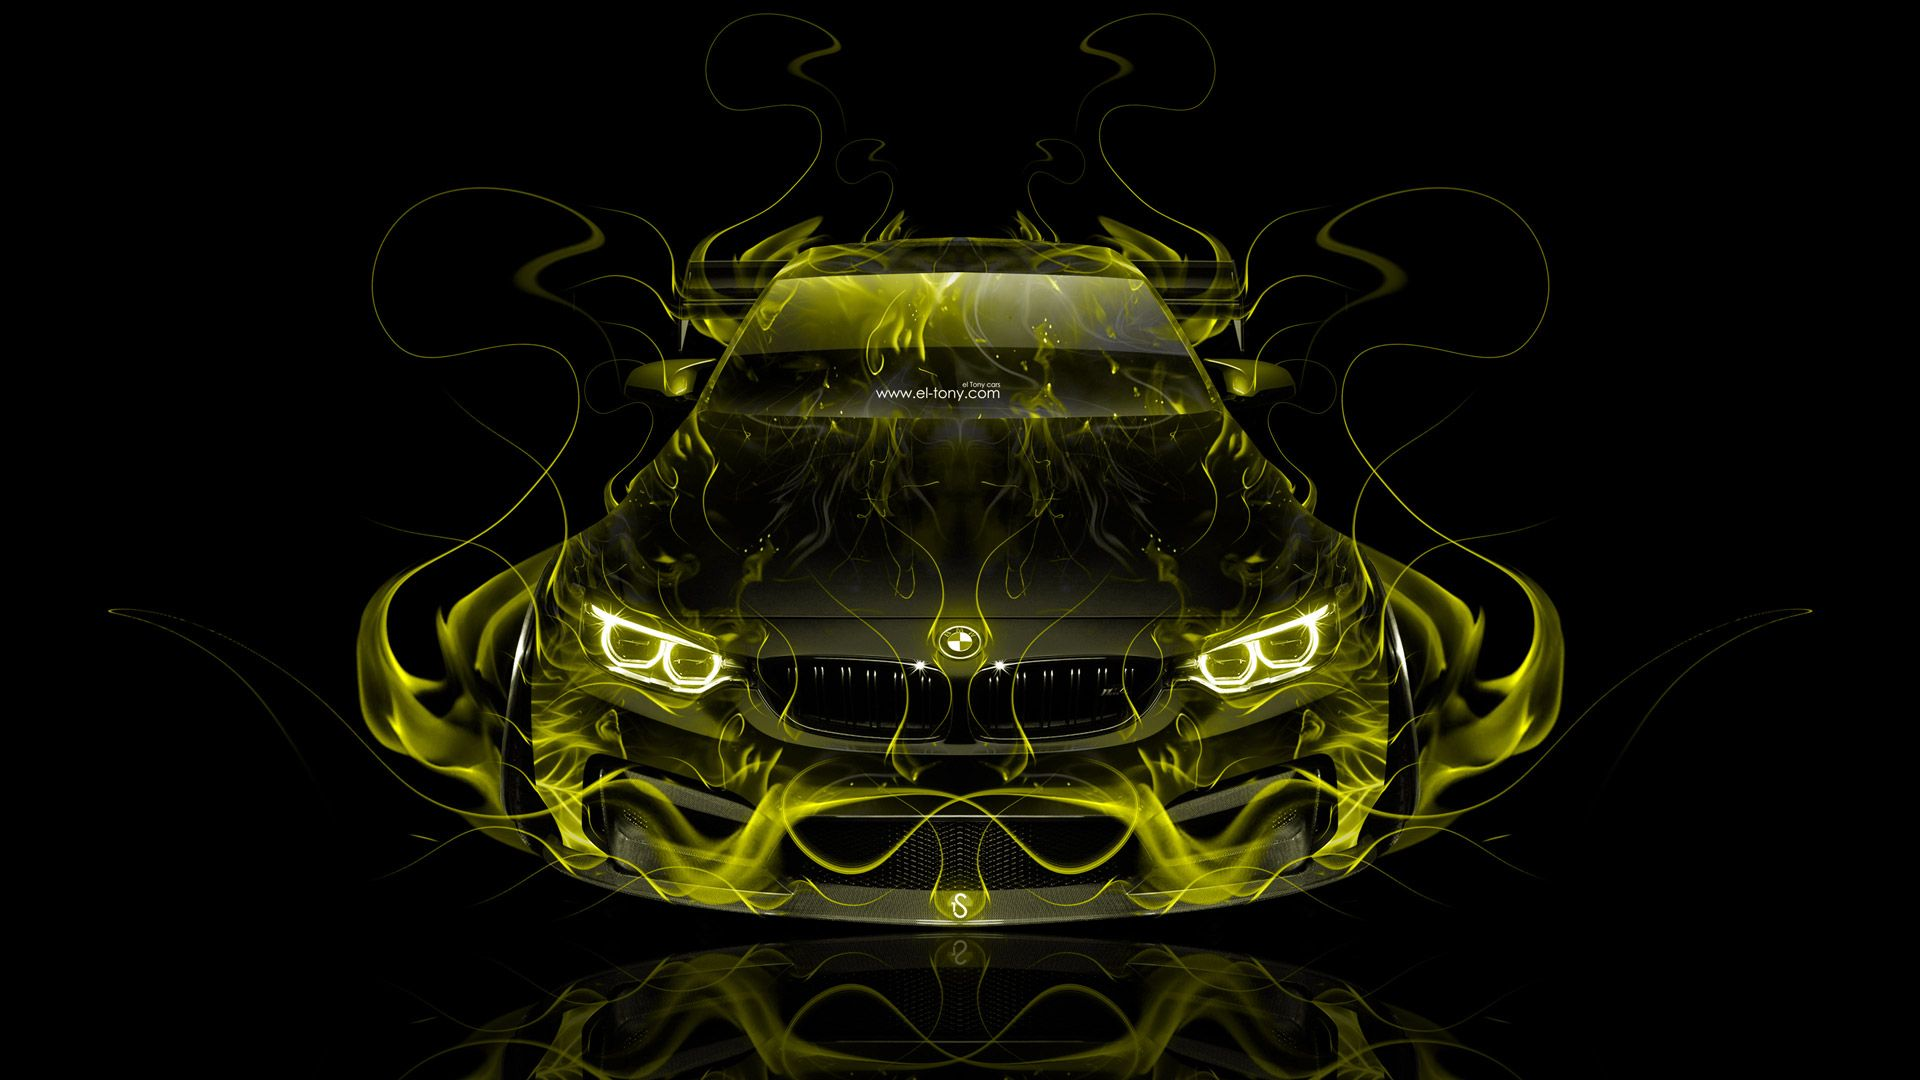 BMW M4 Tuning FrontUp Super Fire Flame Abstract